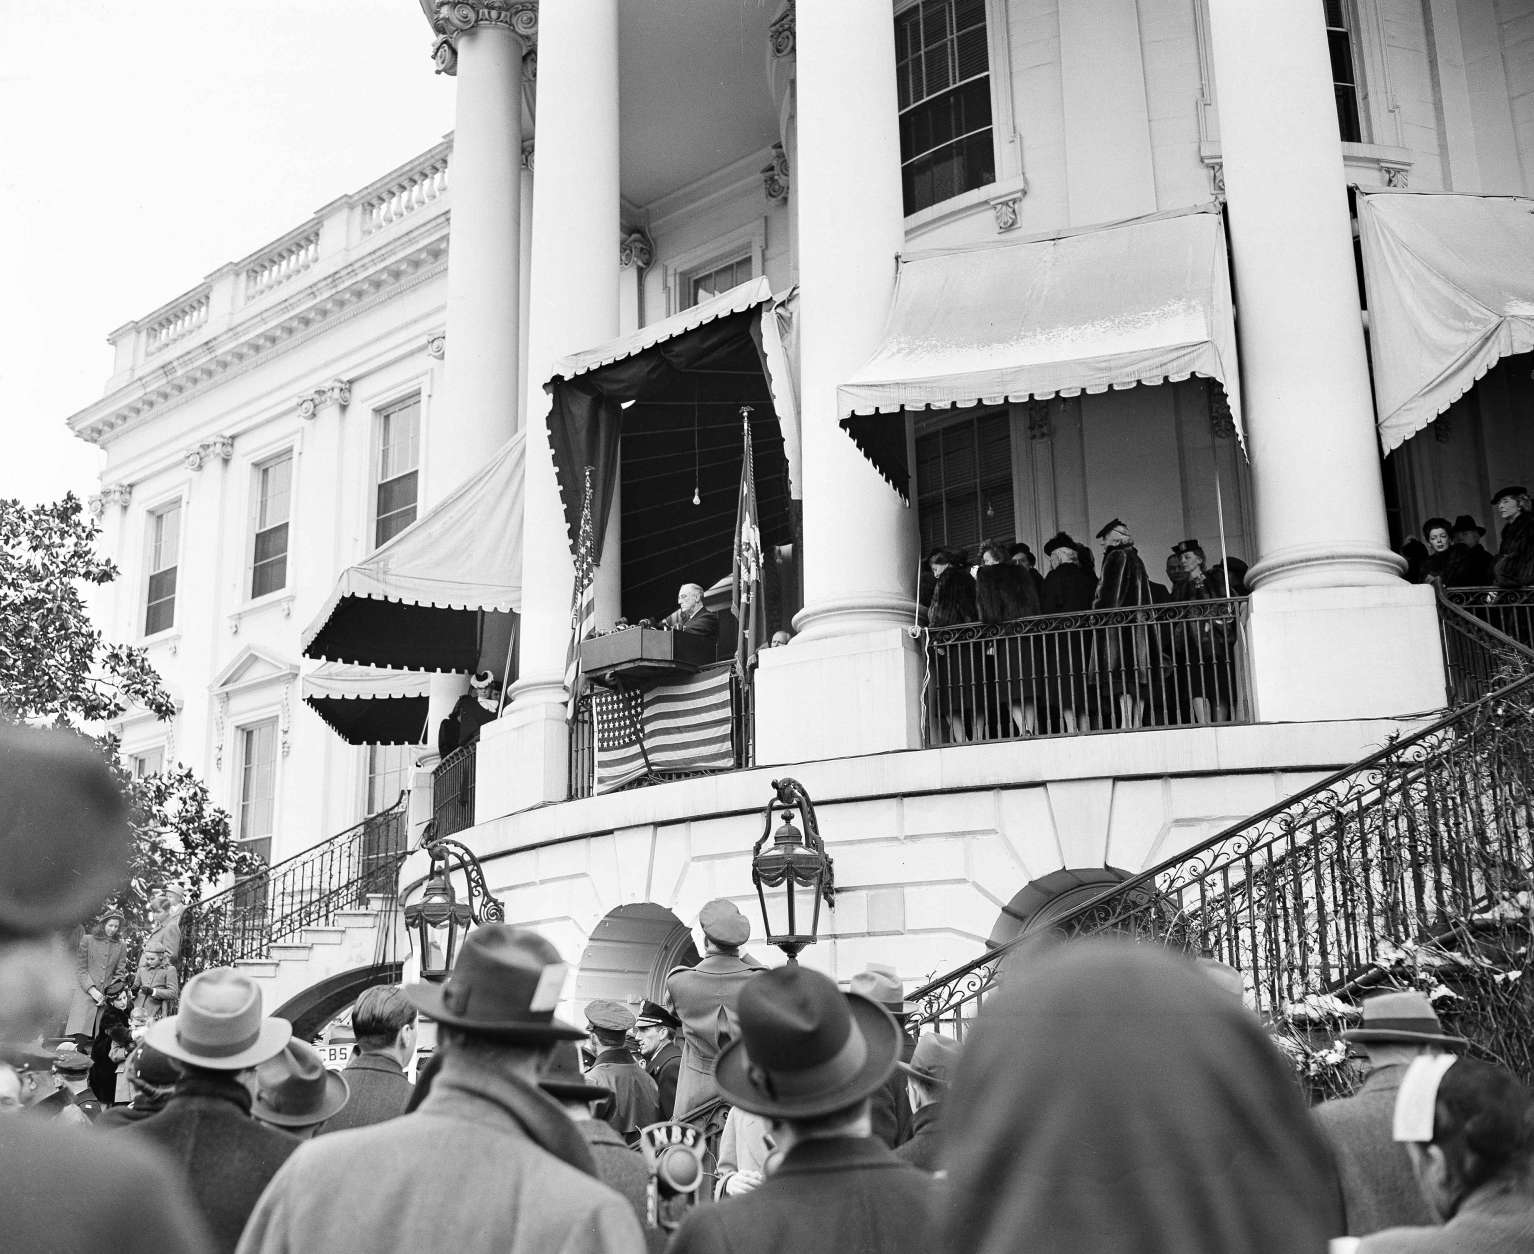 President Franklin D. Roosevelt delivers his fourth term inaugural address from the South Portico of the White House in Washington, D.C., during inauguration ceremonies, Jan. 20, 1945. (AP Photo)